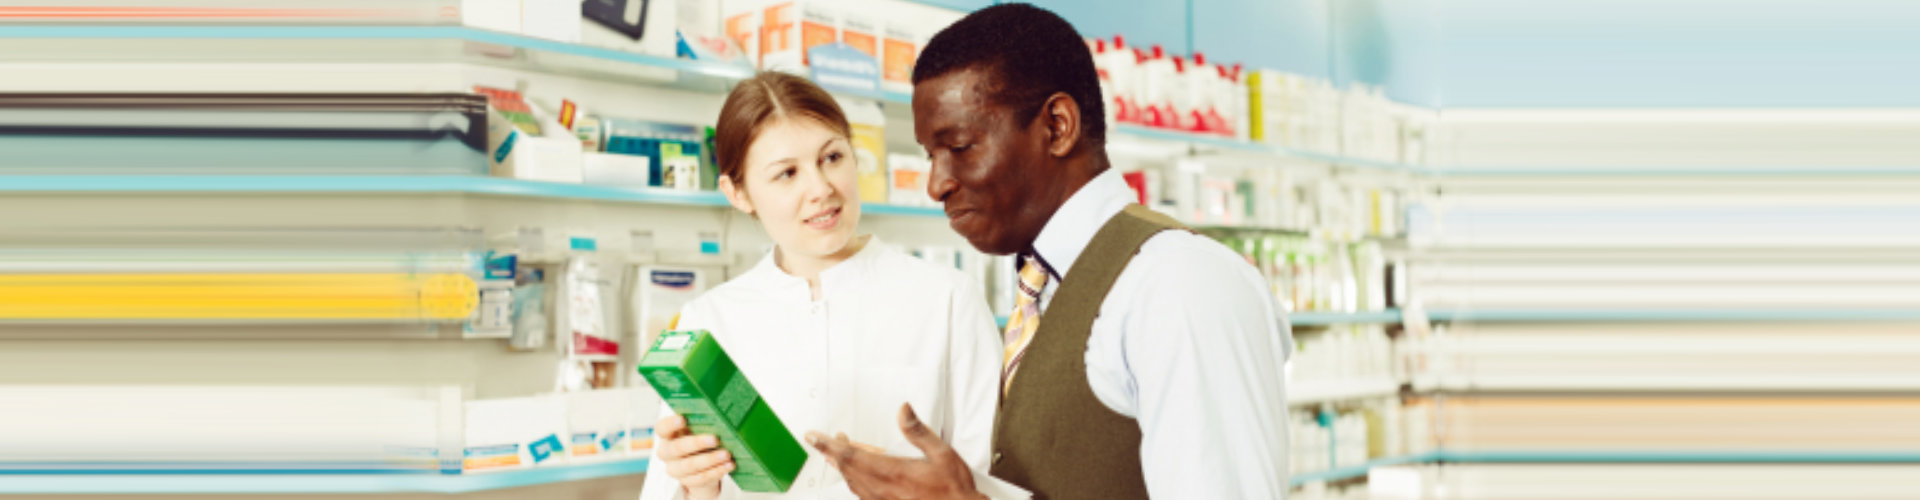 female pharmacist and male customer looking at the box